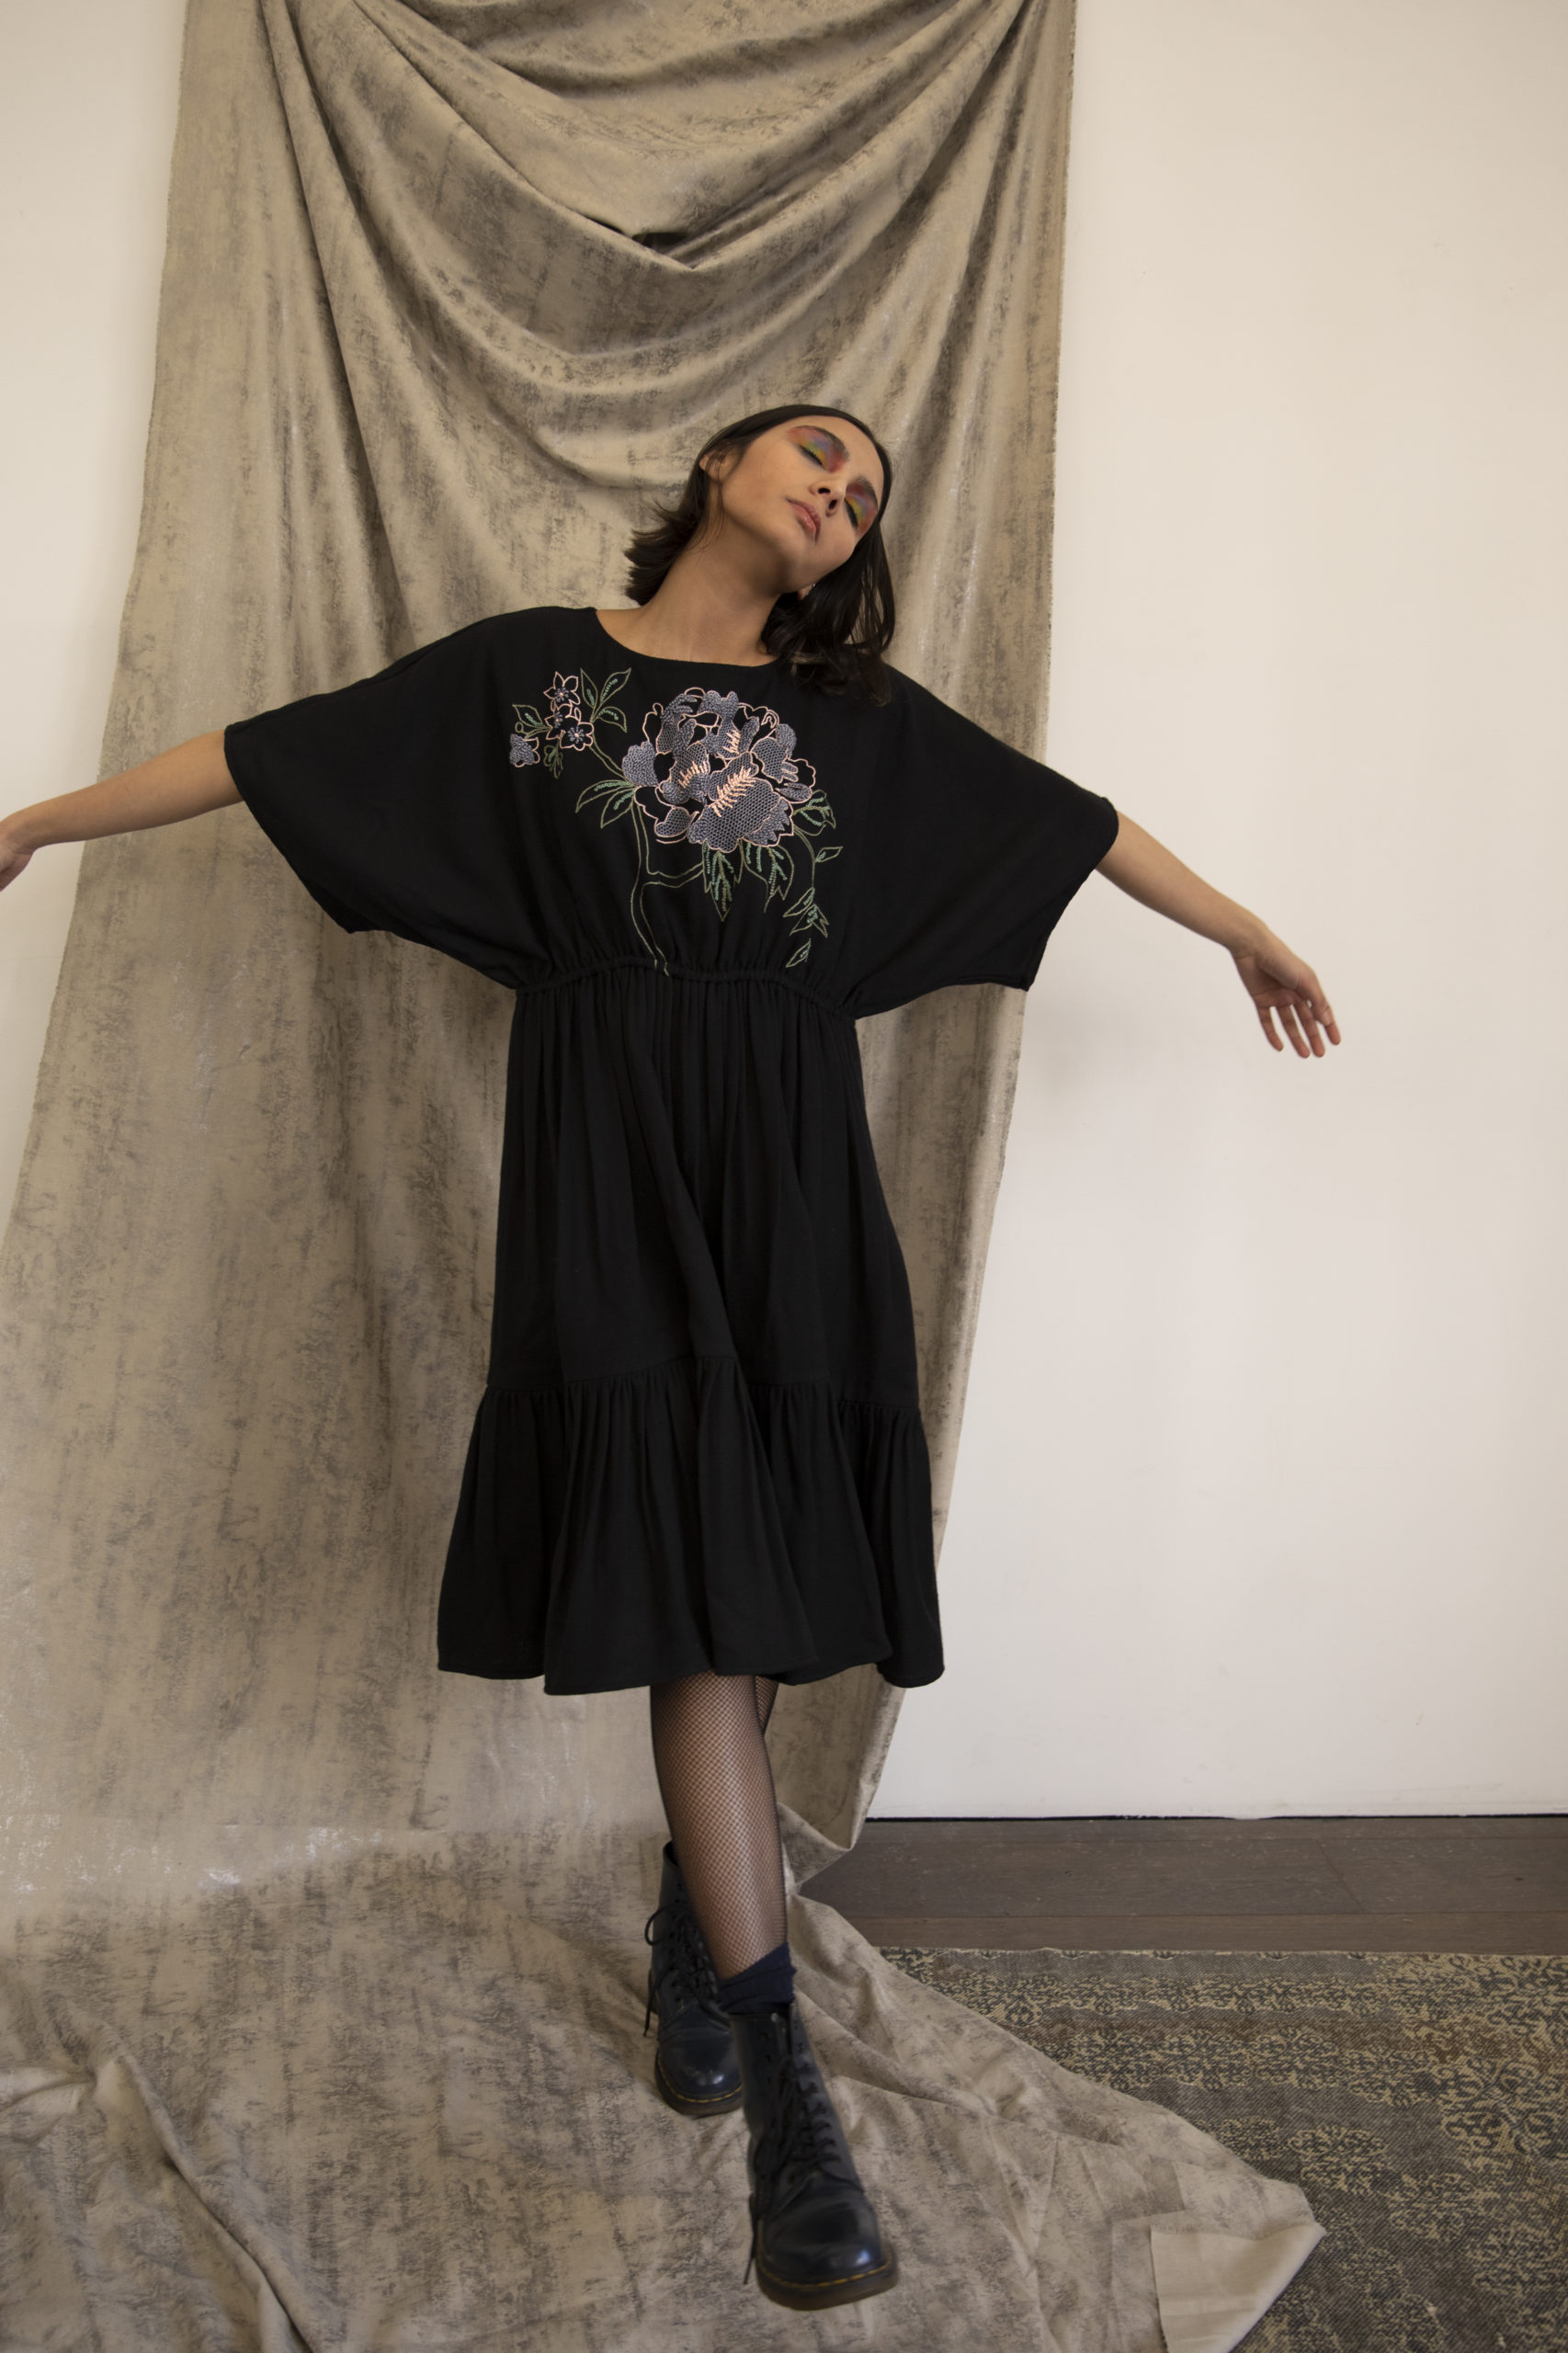 Robe Lally noire broderie exclusive à la main en fibre de soja vegan